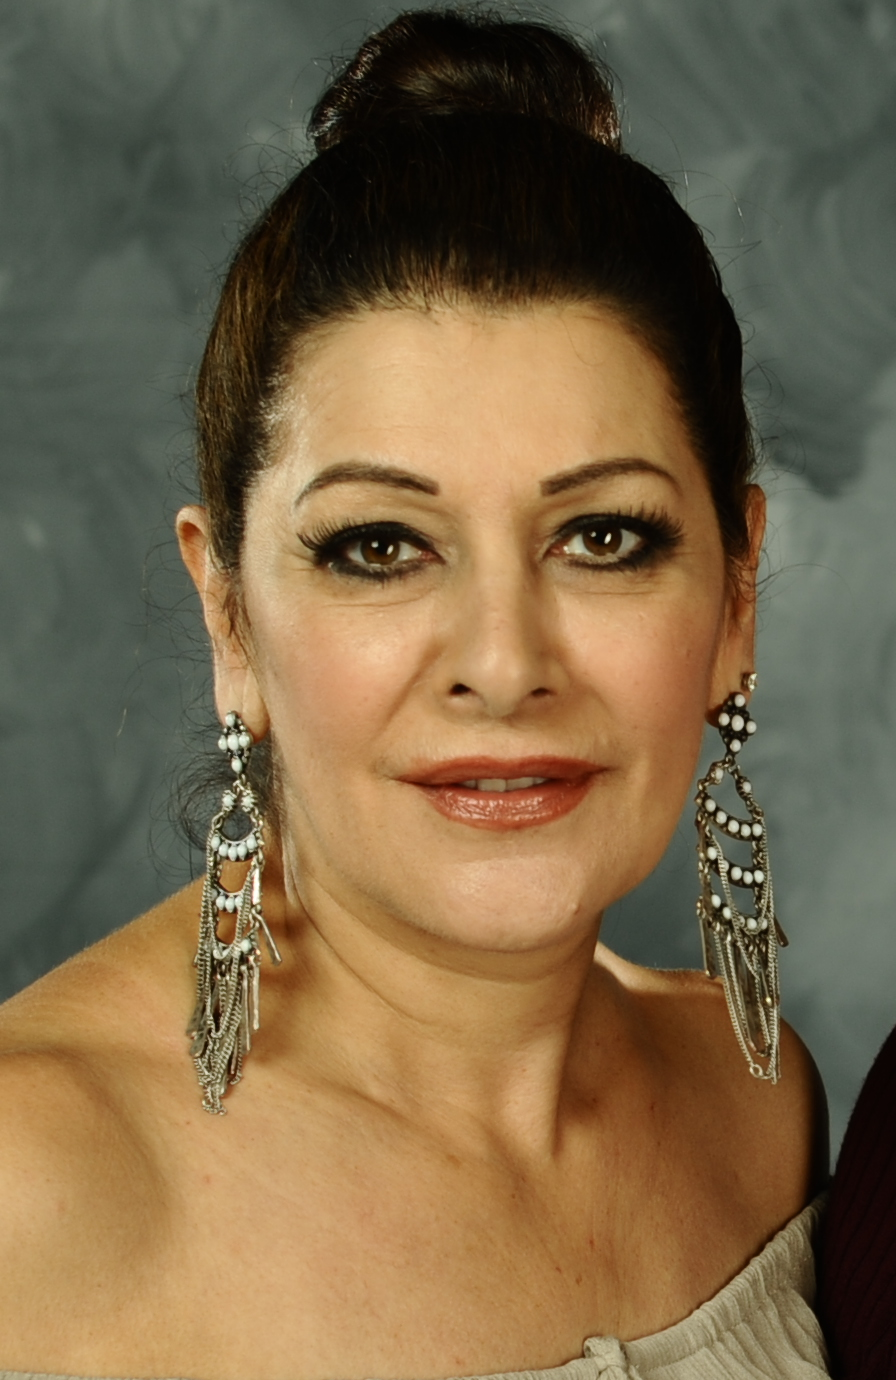 marina sirtis star trekmarina sirtis instagram, marina sirtis now, marina sirtis star trek, marina sirtis 2016, marina sirtis, marina sirtis imdb, marina sirtis 2015, marina sirtis accent, marina sirtis twitter, marina sirtis wiki, marina sirtis the wicked lady, marina sirtis grey anatomy, marina sirtis net worth